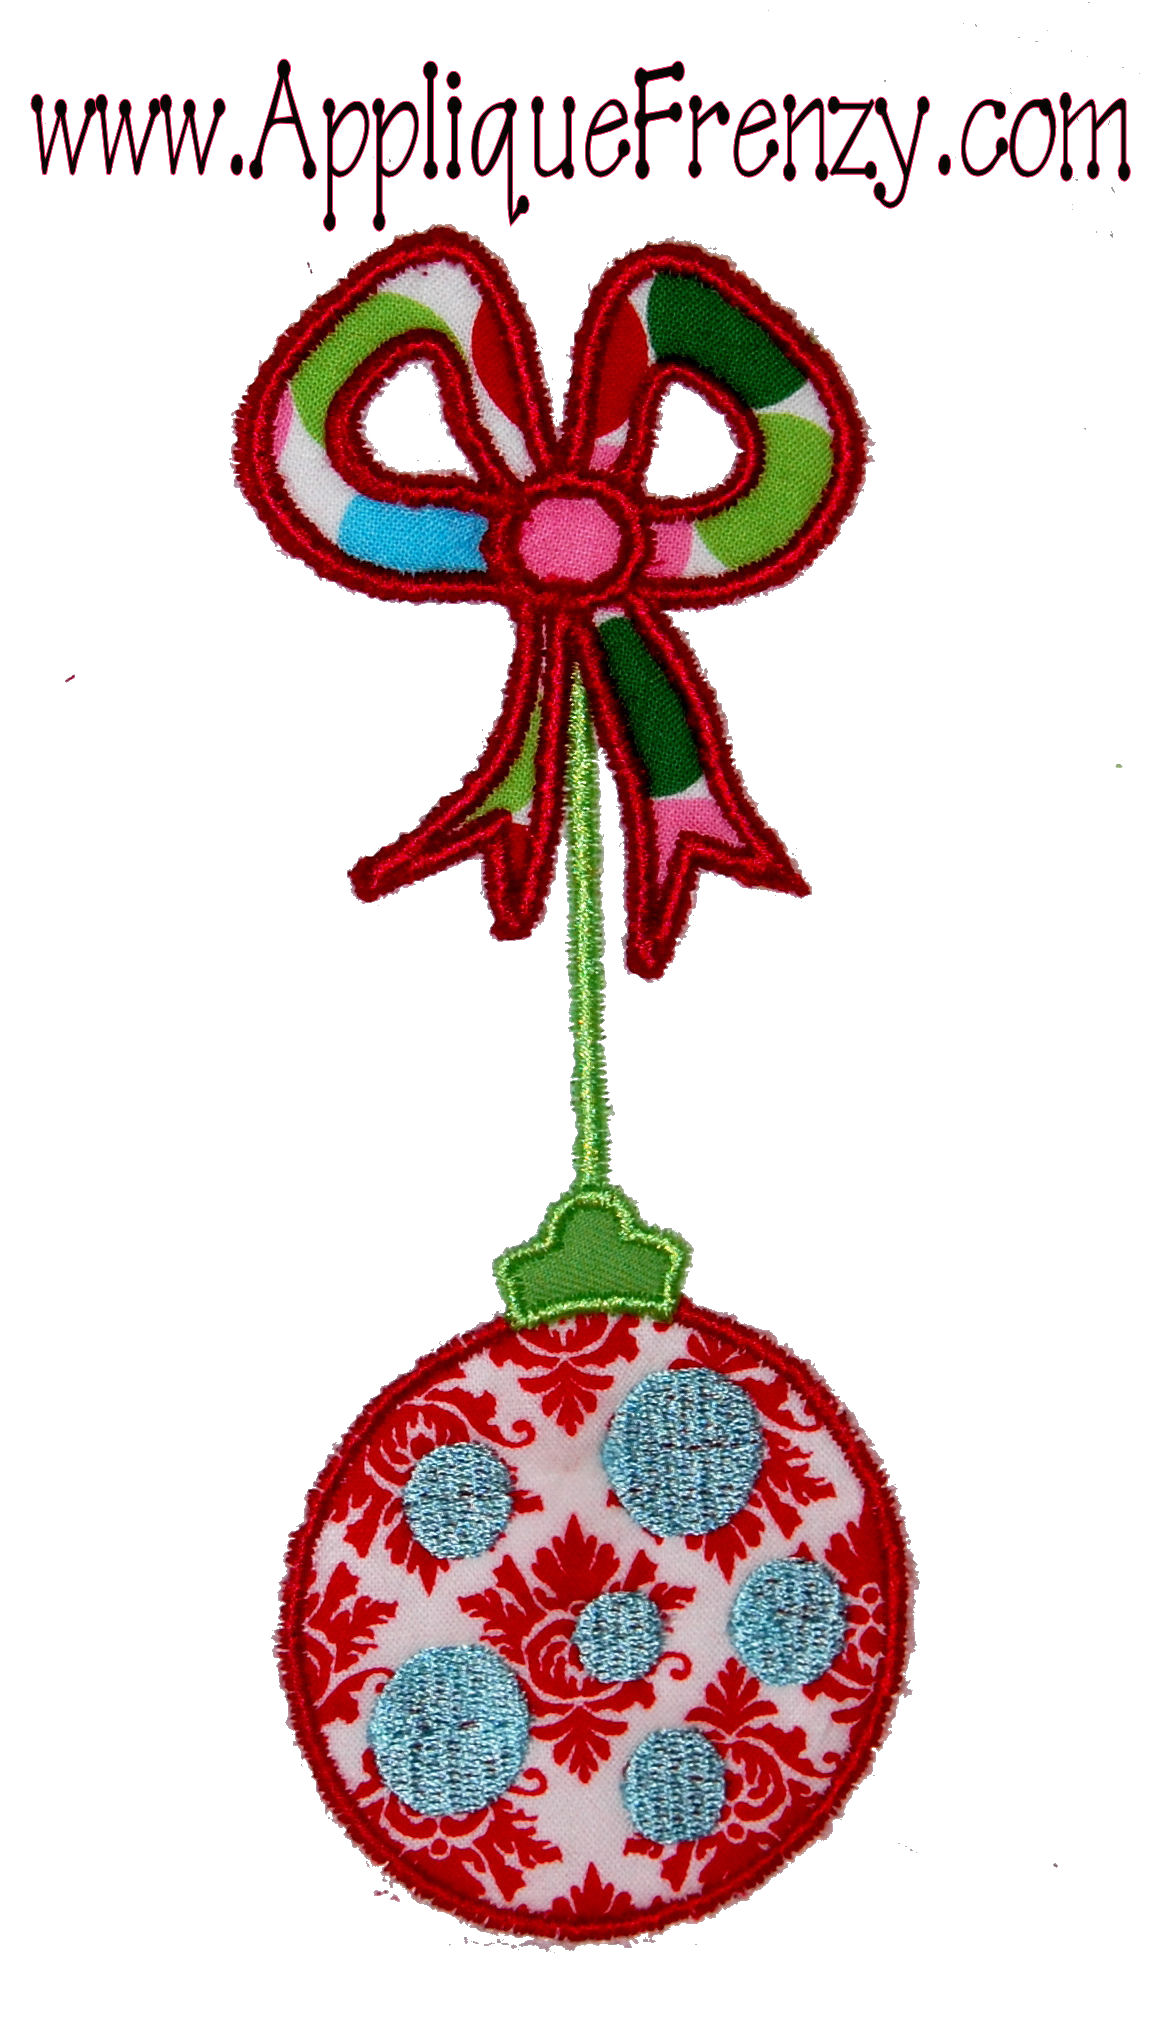 Ornament on a Bow Applique Design